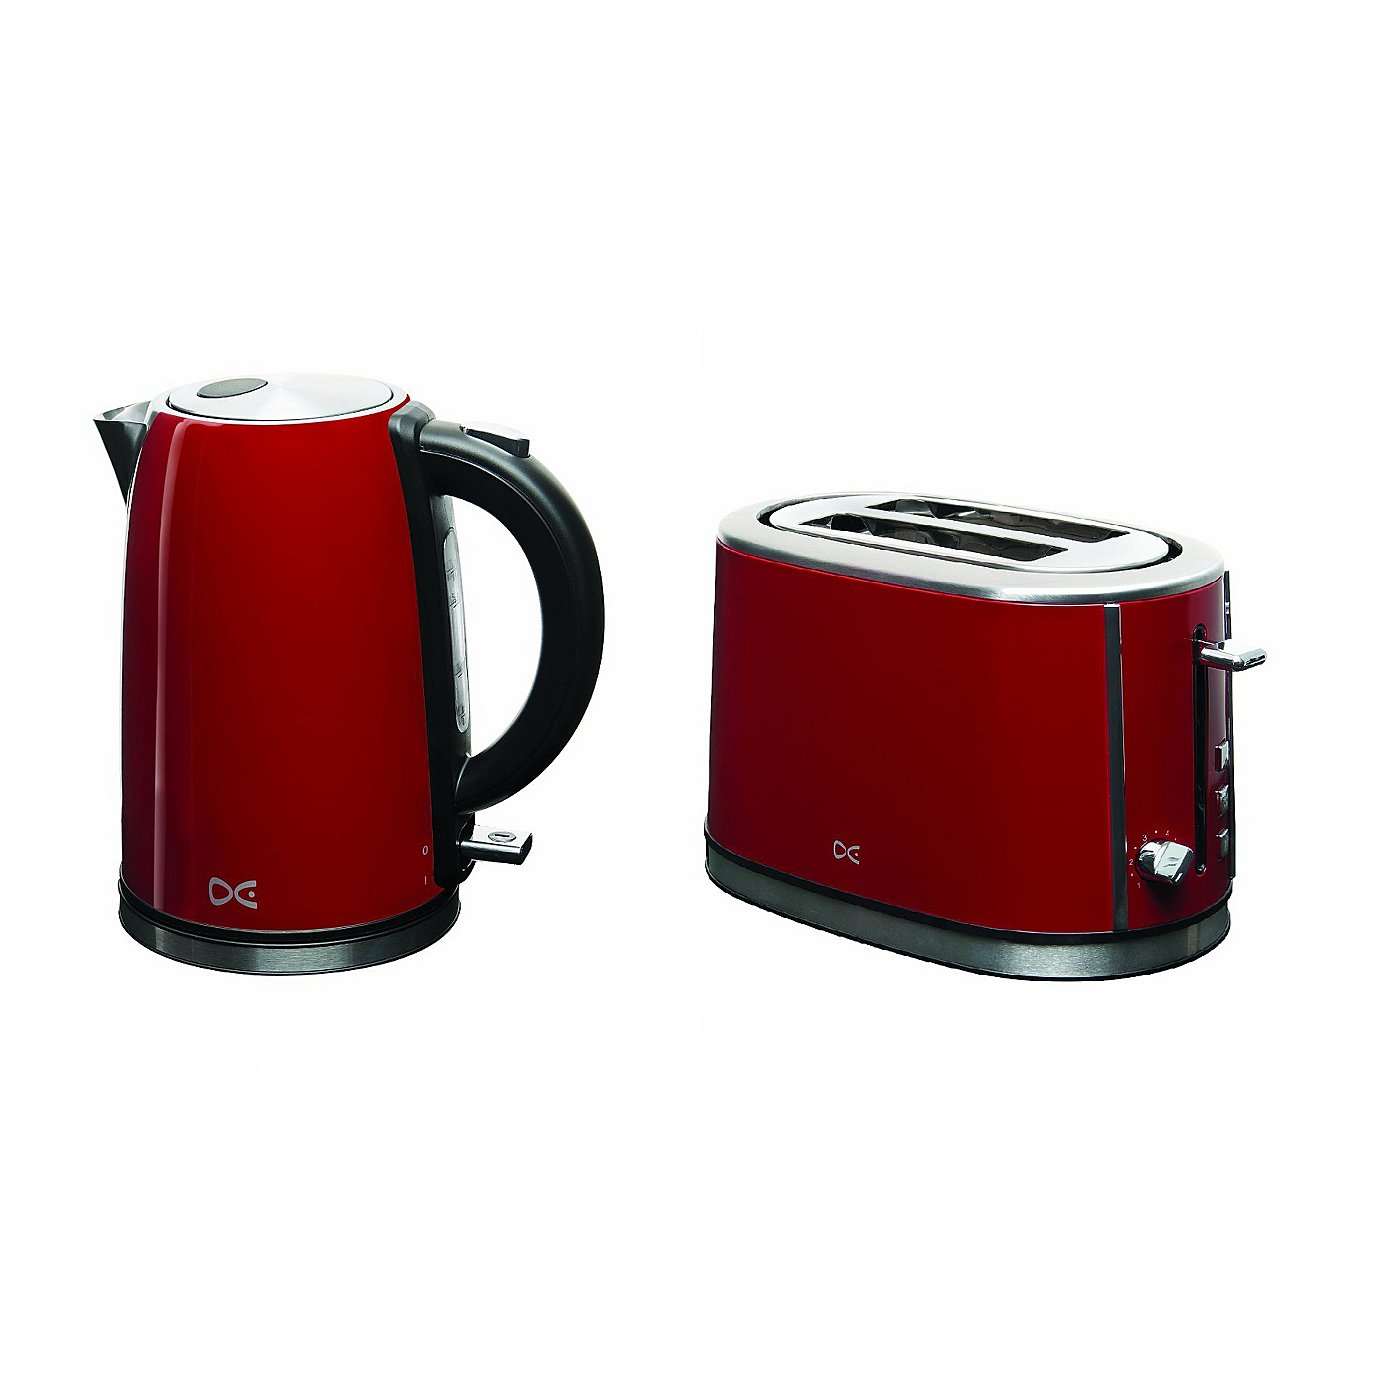 Uncategorized Asda Kitchen Appliances daewoo kettle 2 slice toaster range red kettles toasters loading zoom